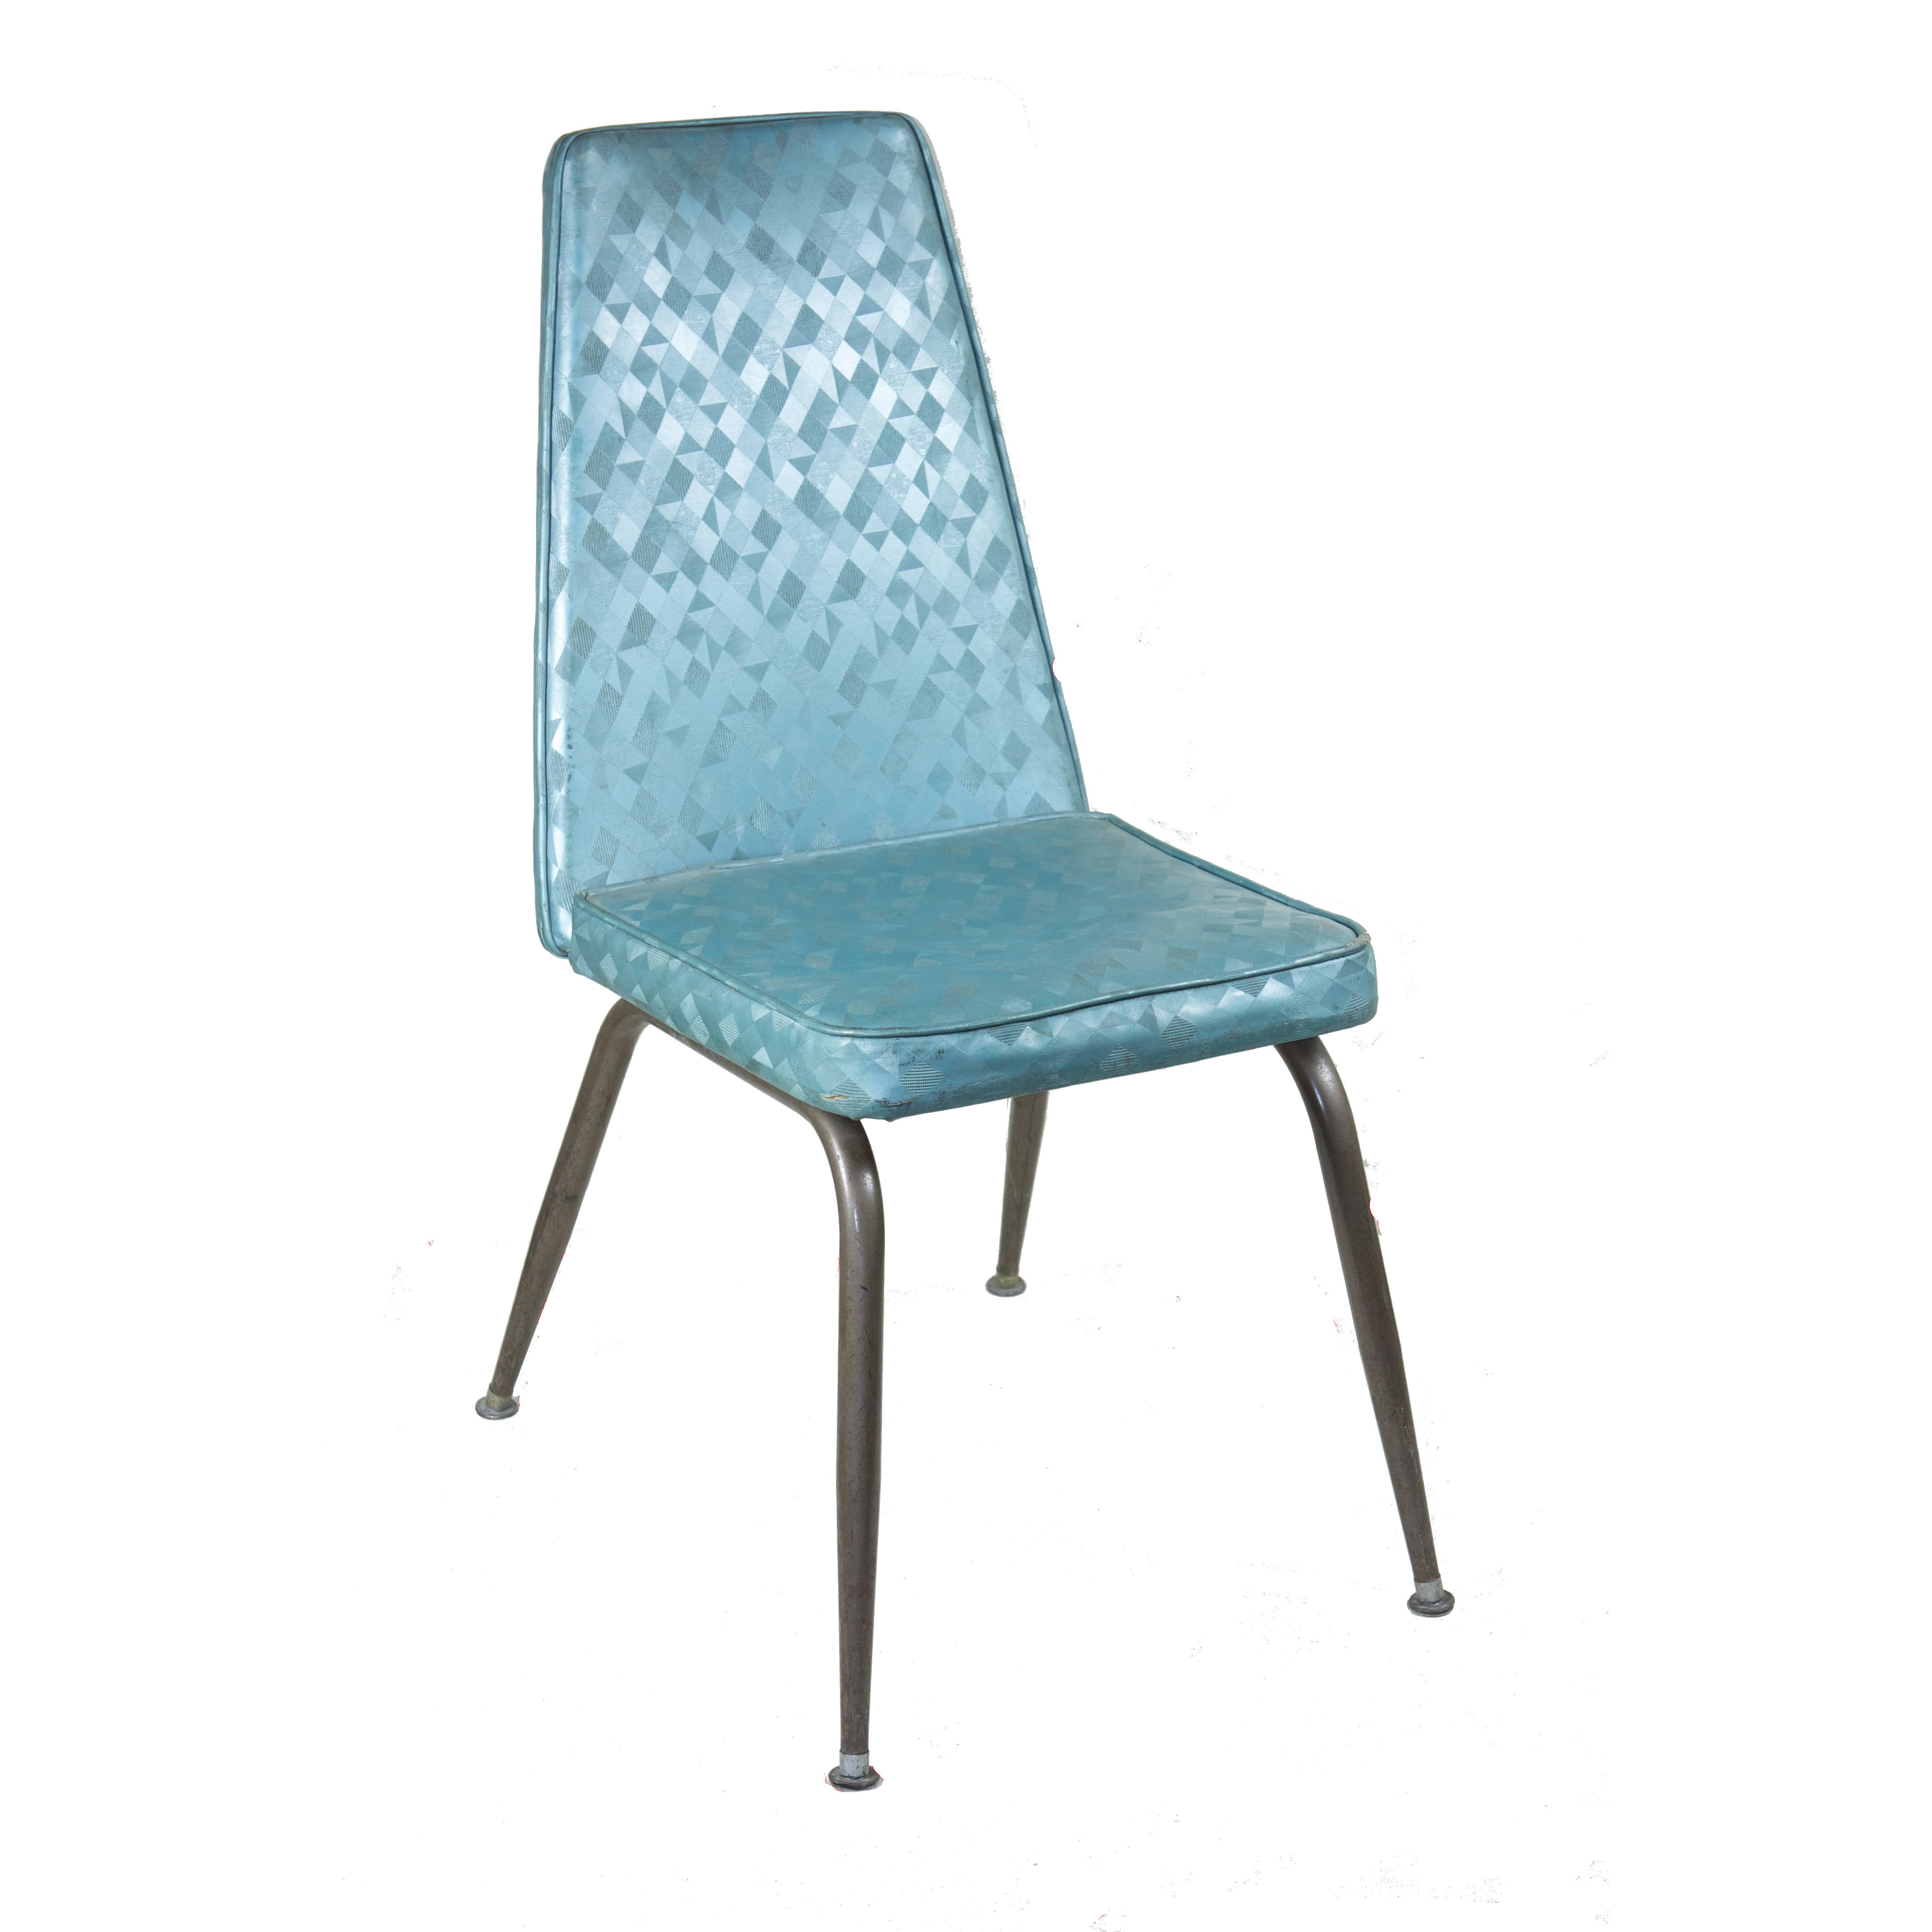 Chair 60s style blue metallic air designs for Sixties style chairs